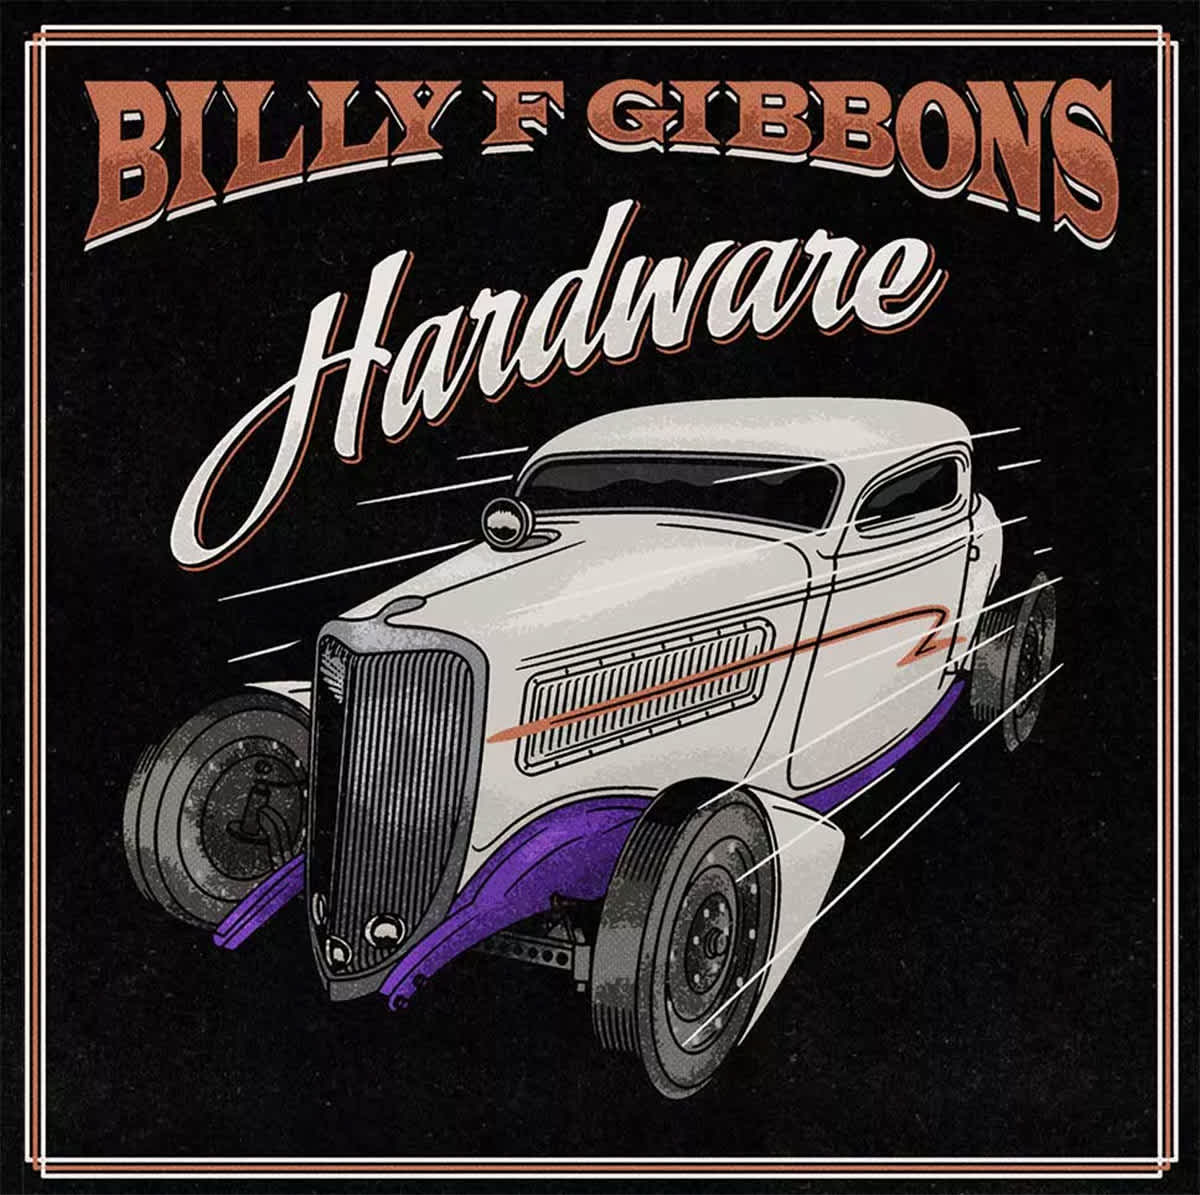 Billy F Gibbons - Hardware